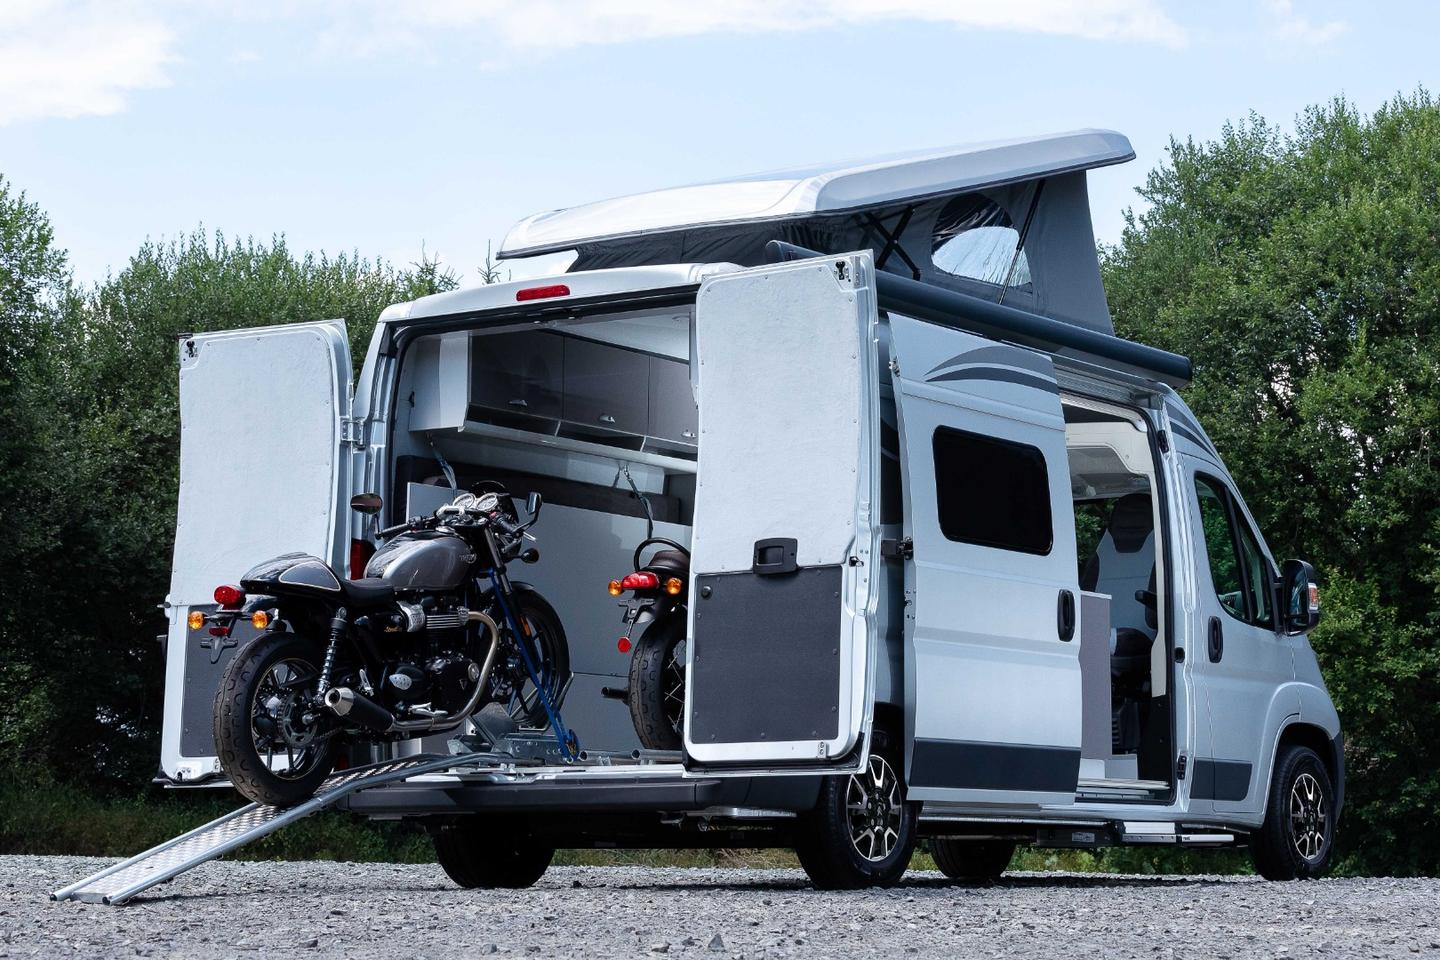 Citroën goes motorcycle camping with Jumper Biker camper van